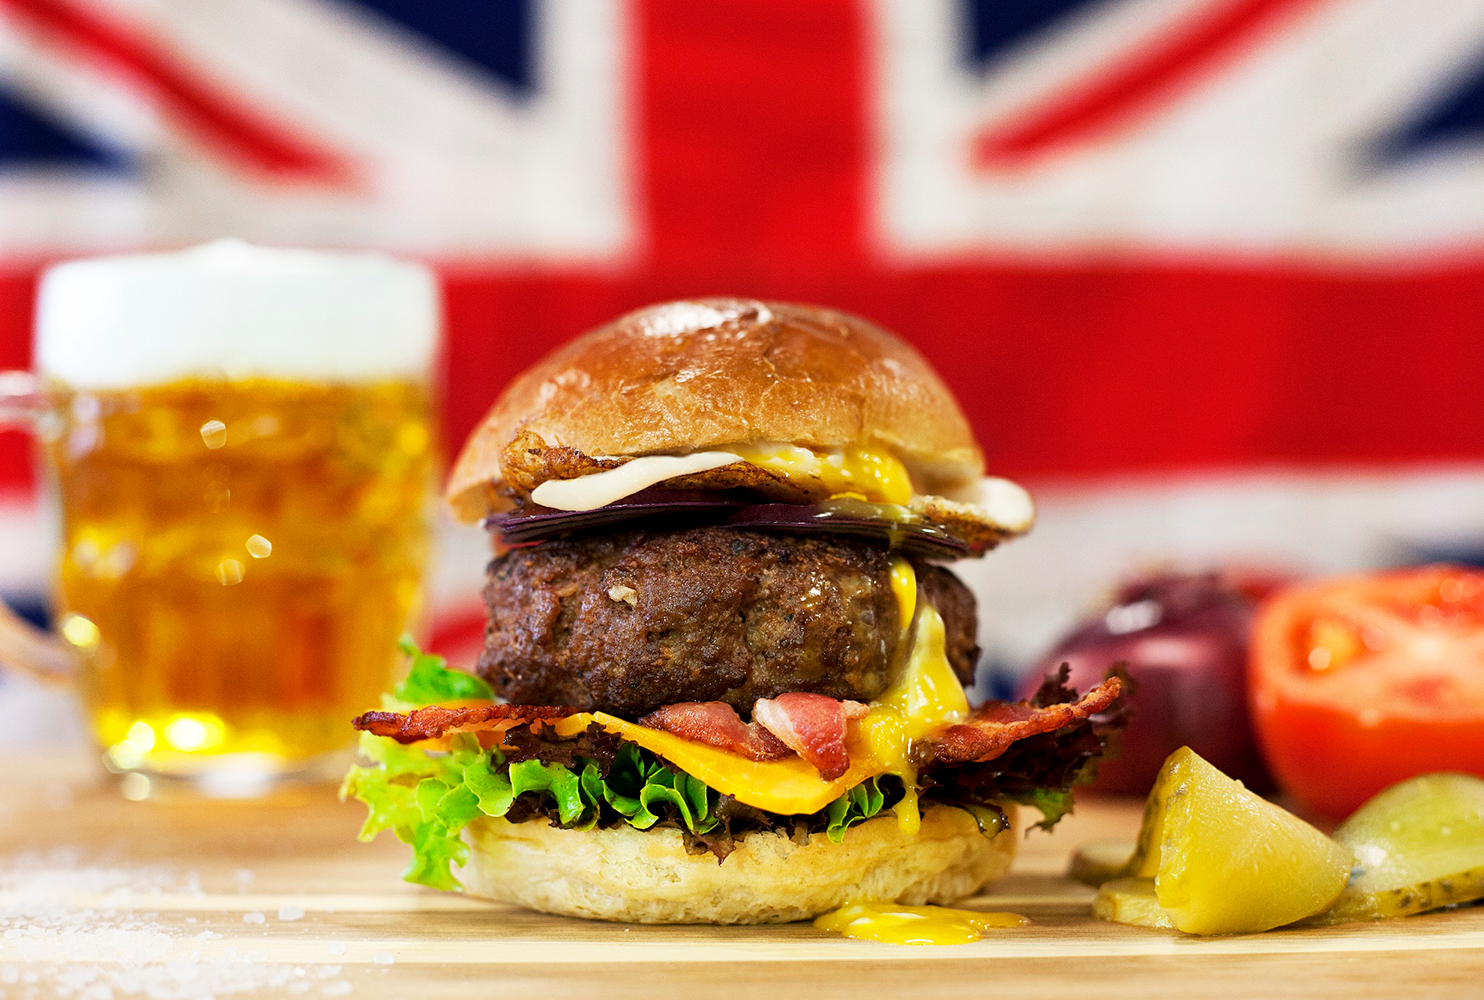 DALESMAN BEEF BURGER SEASONING